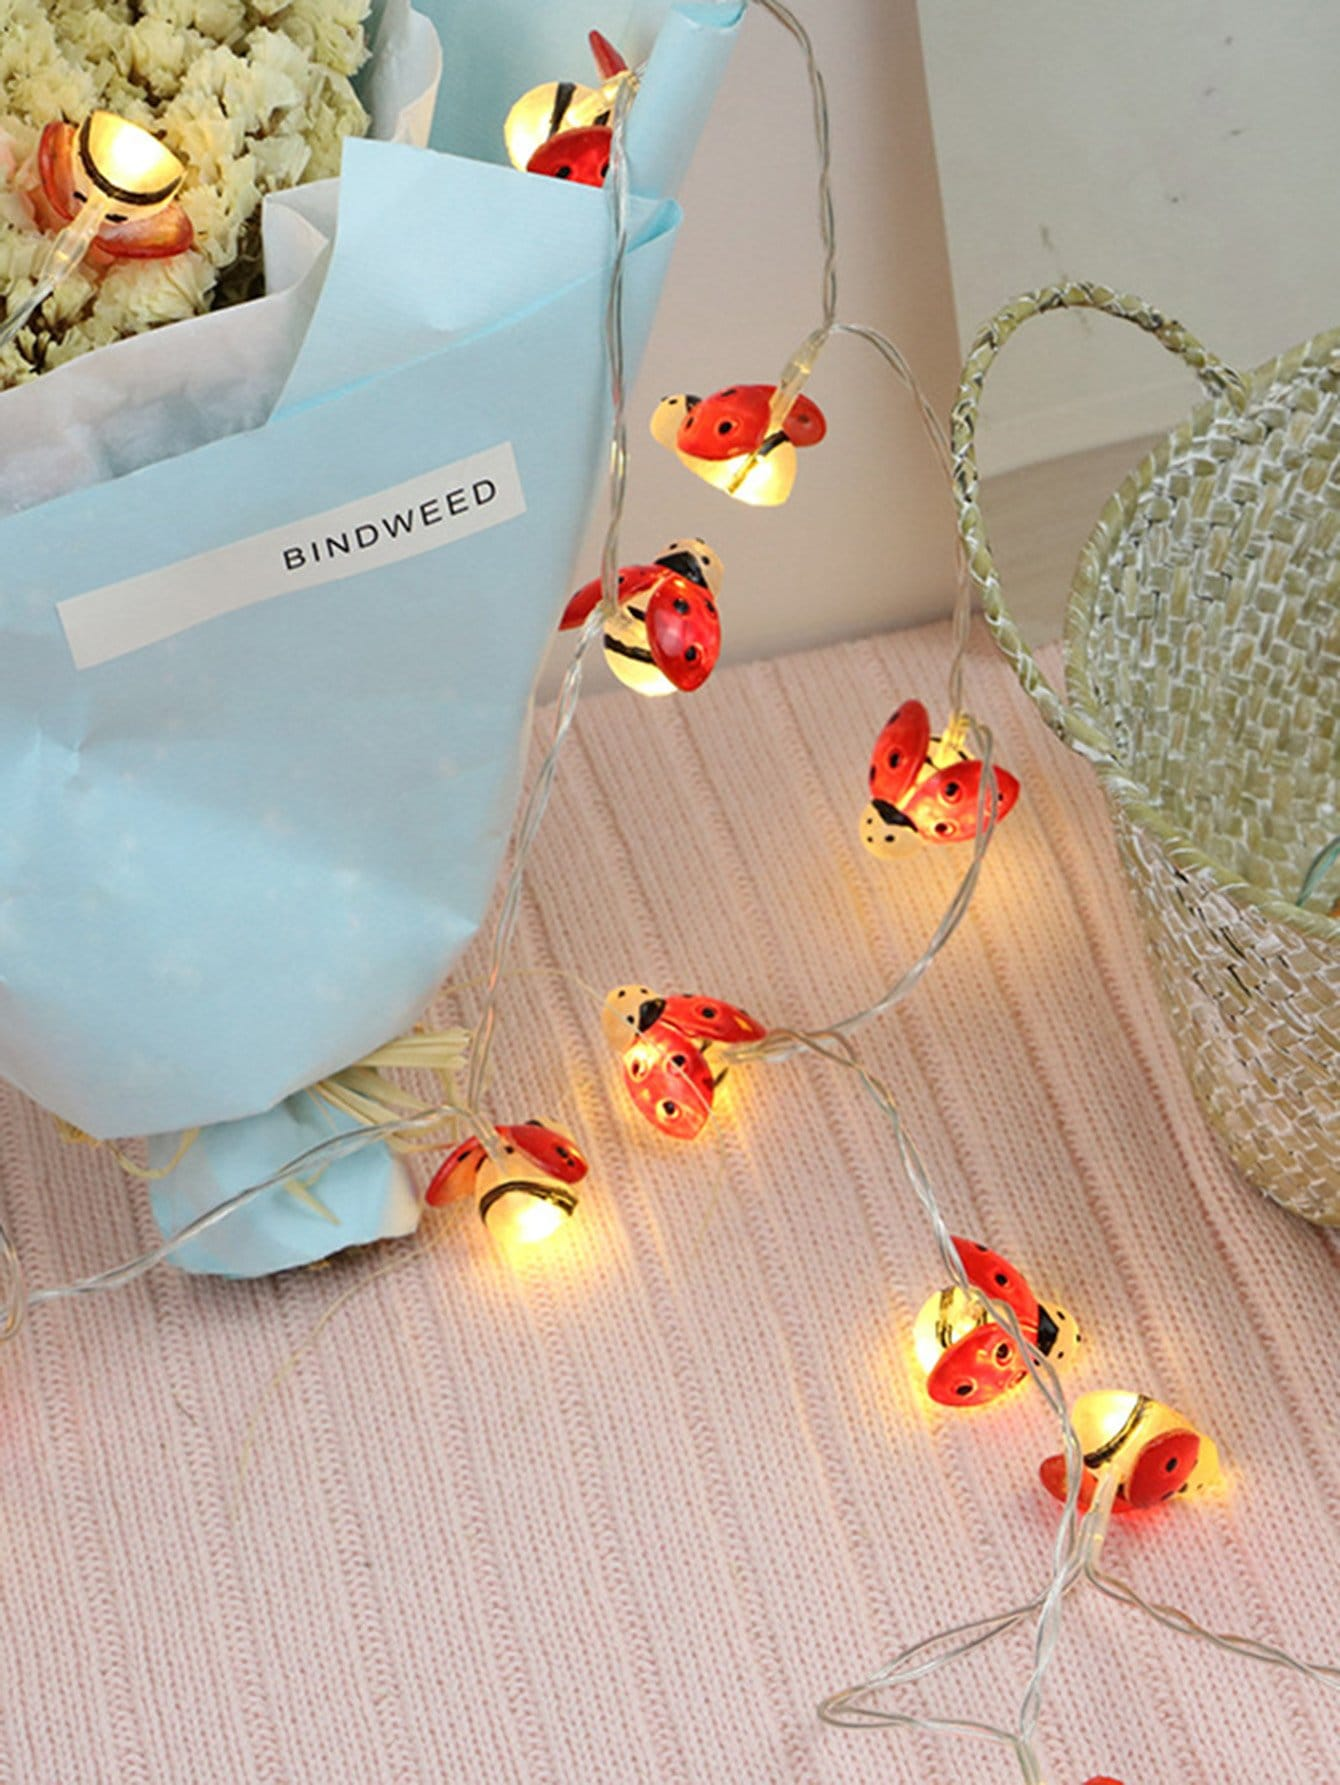 20pcs Ladybug Shaped Bulb String Light new for oom202 envitec oxygen sensor oxygen battery original from germany